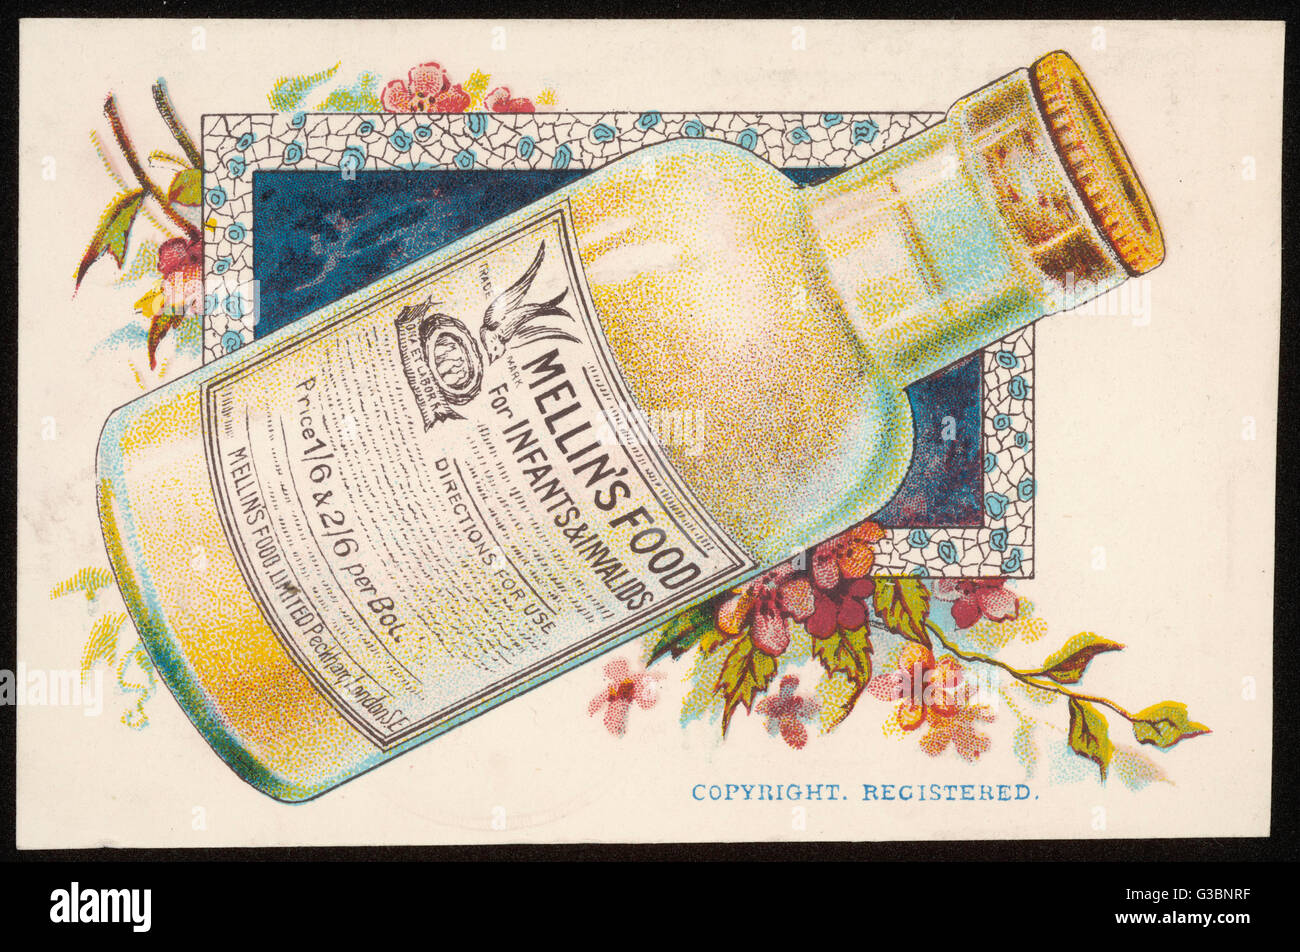 Mellin's Food -  for infants and invalids.        Date: late 19th century? - Stock Image